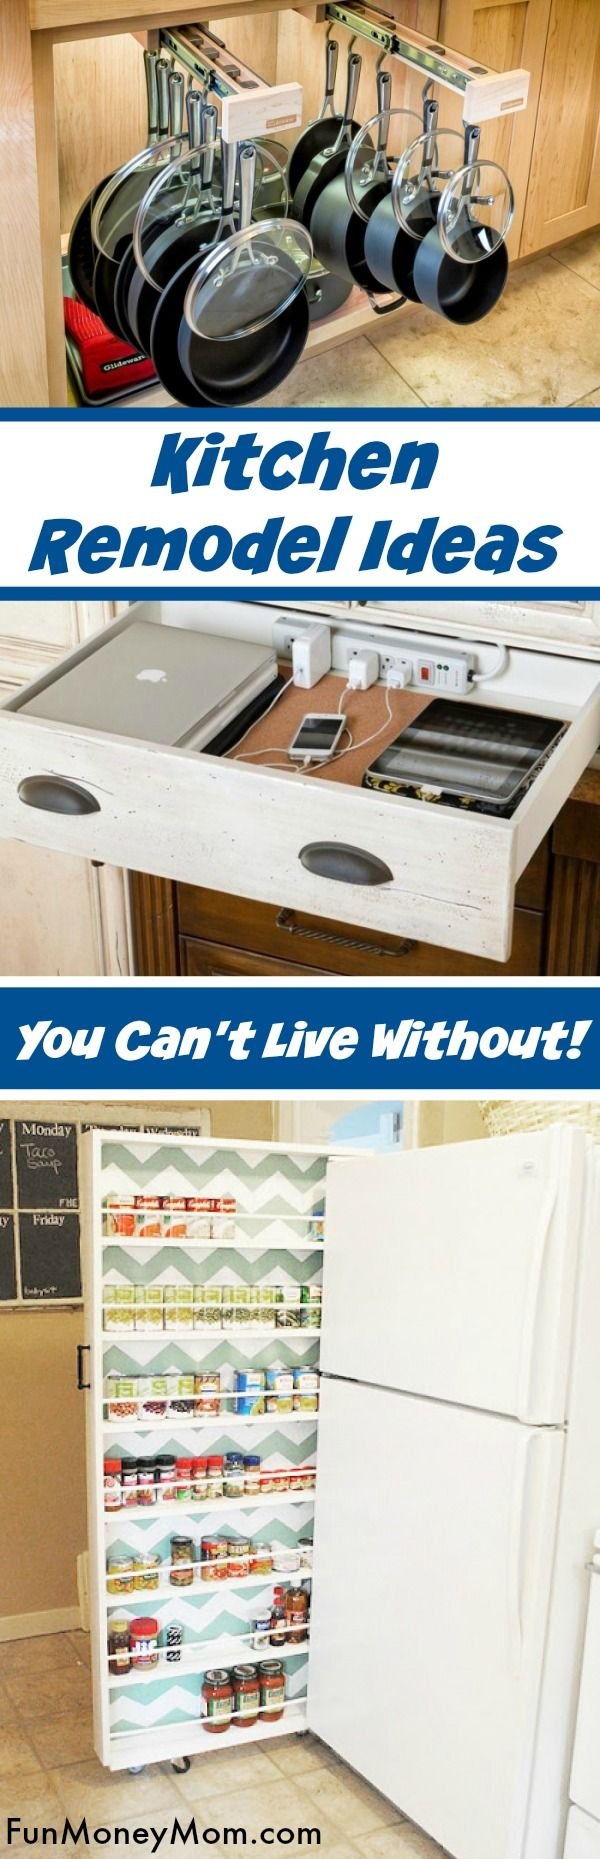 11 Incredibly Smart Organizing Ideas For Your Kitchen Remodel ...